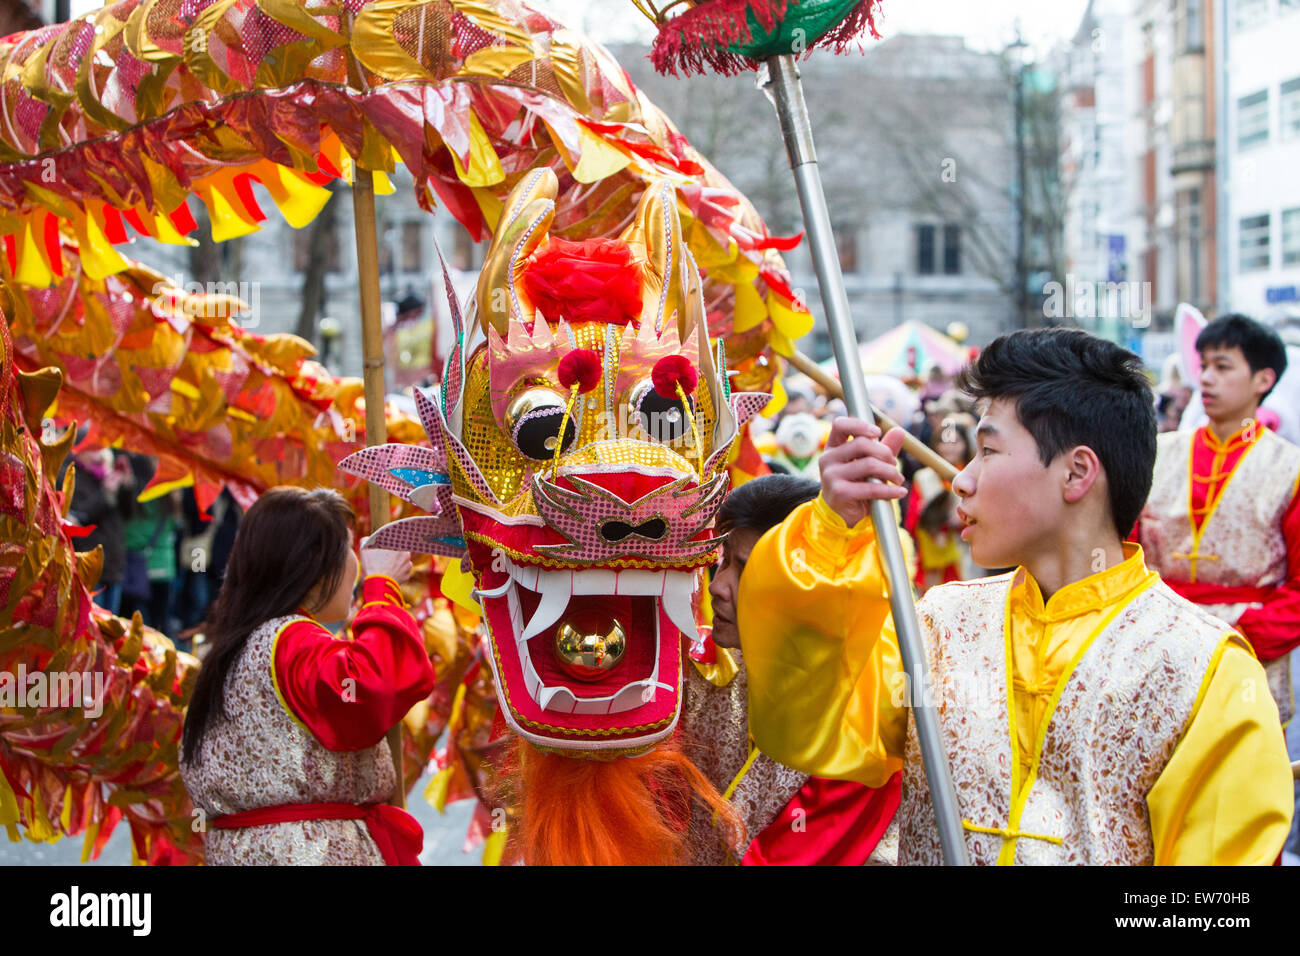 People in traditional Chinese costume with Chinese paper dragon, celebrating Chinese New Year in London - Stock Image